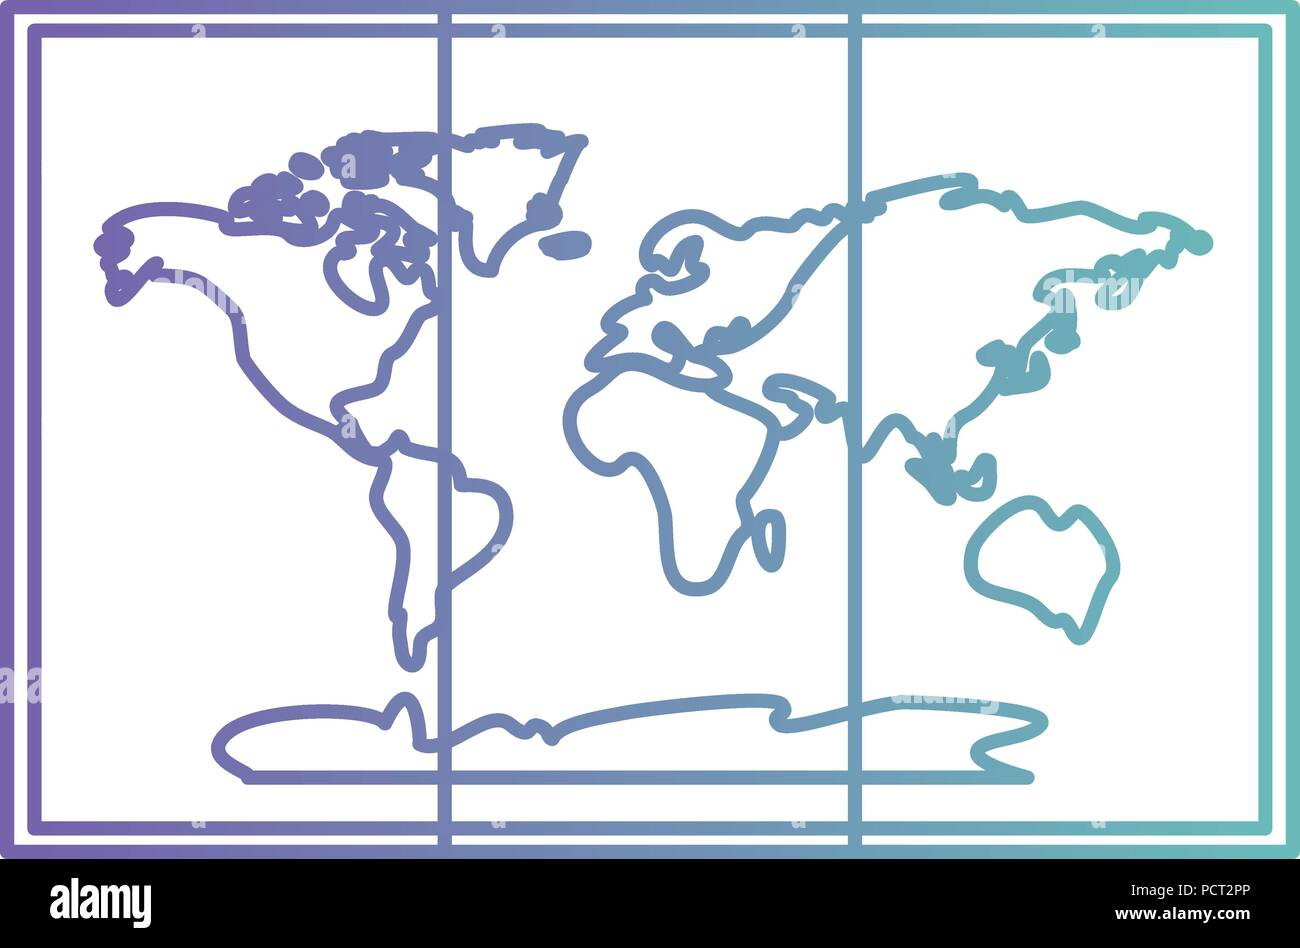 paper map guide icon - Stock Vector